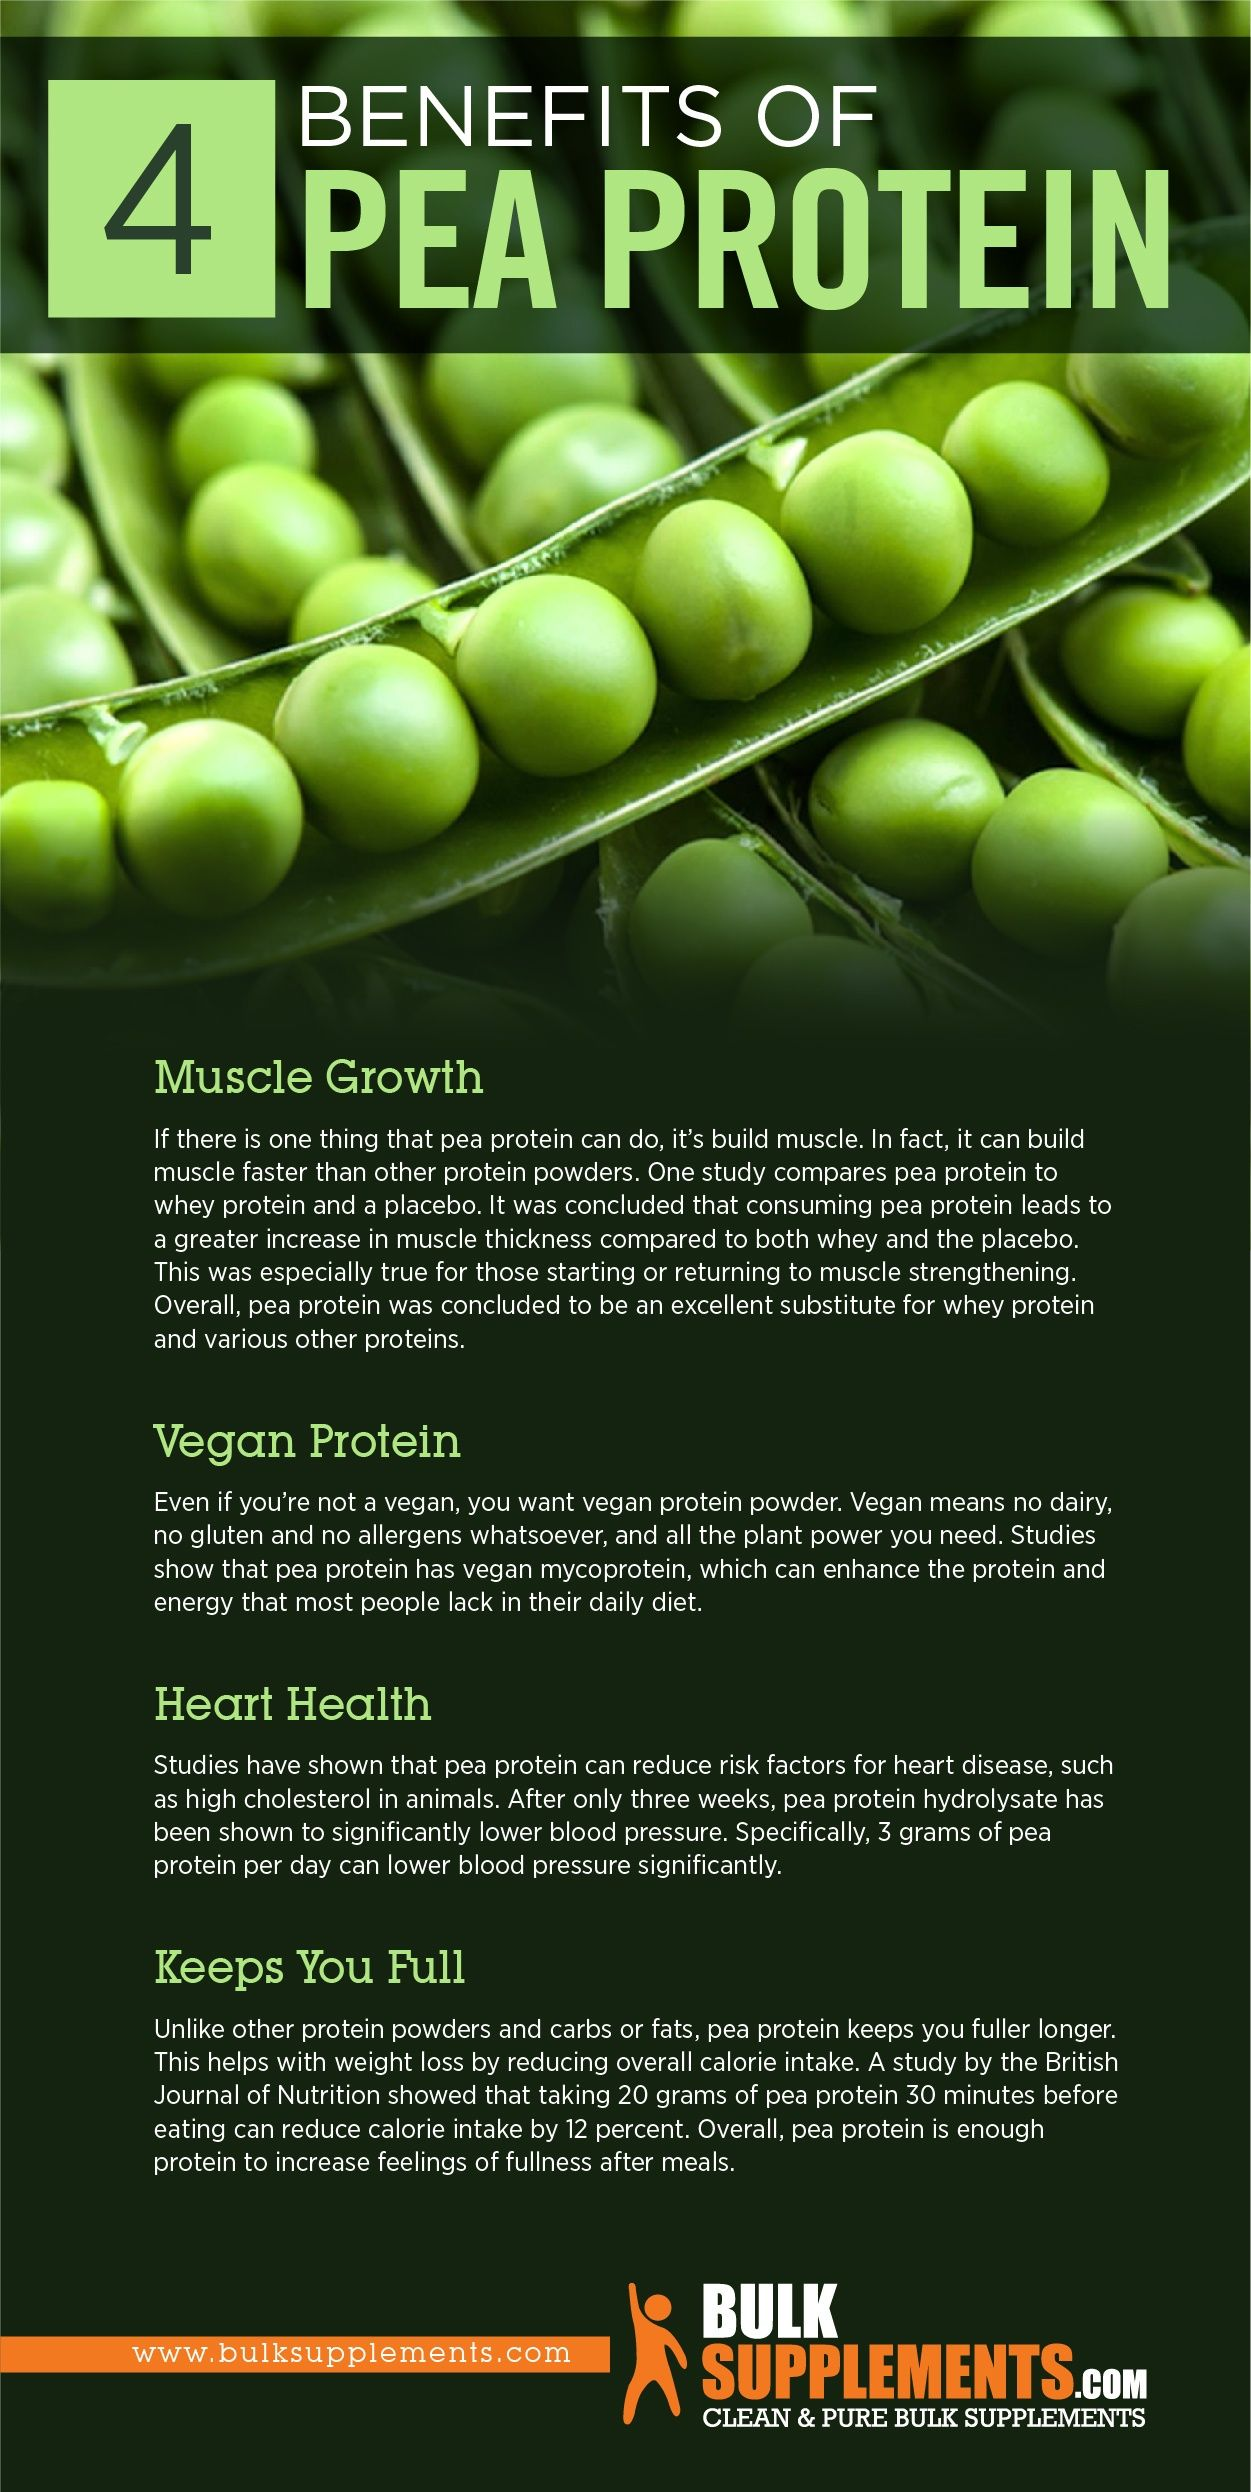 Benefits Of Pea Protein Powder How To Use It Bulksupplements Com Pea Protein Powder Benefits Of Peas Pea Protein